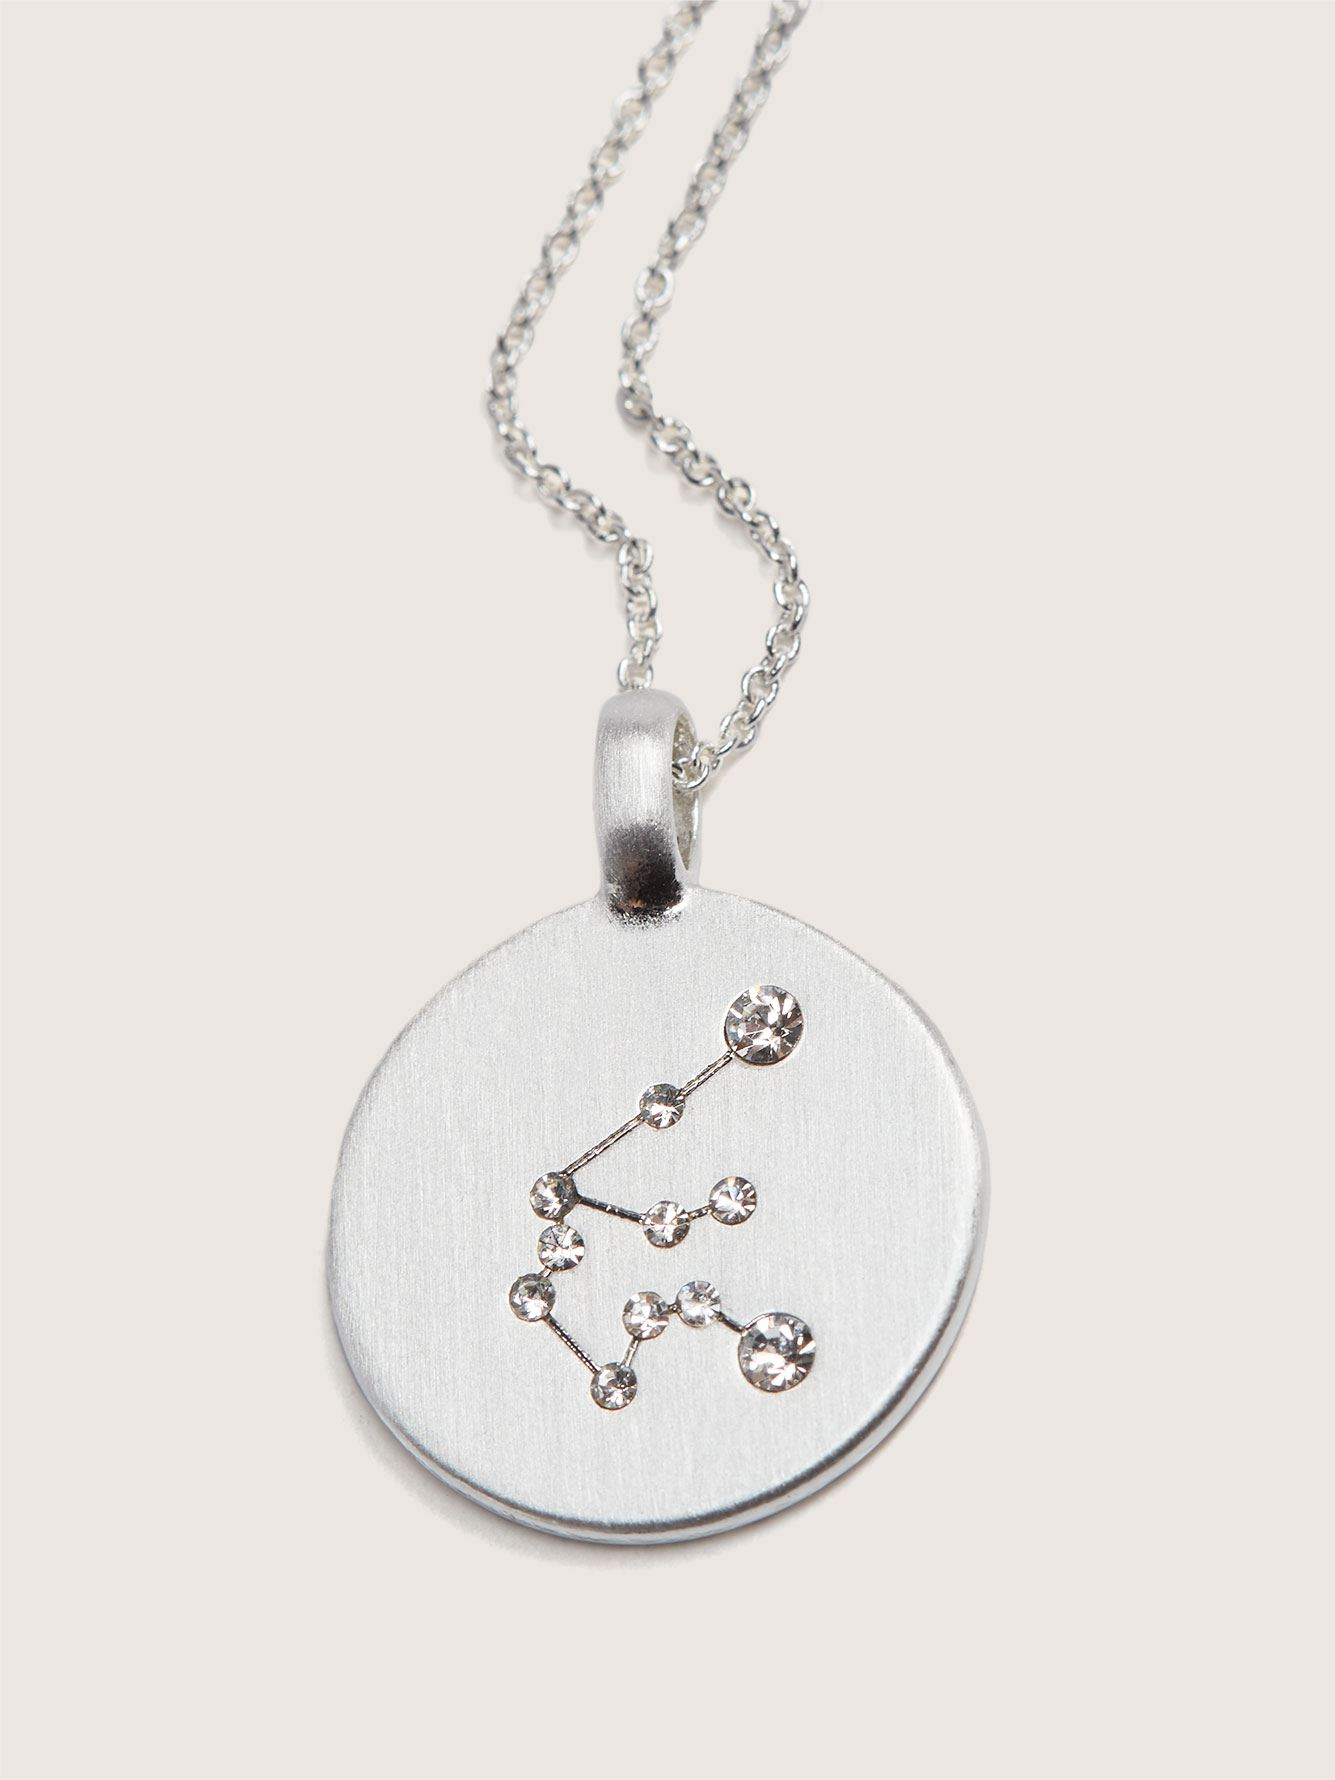 Silver Plated Star Sign Necklace - Pilgrim